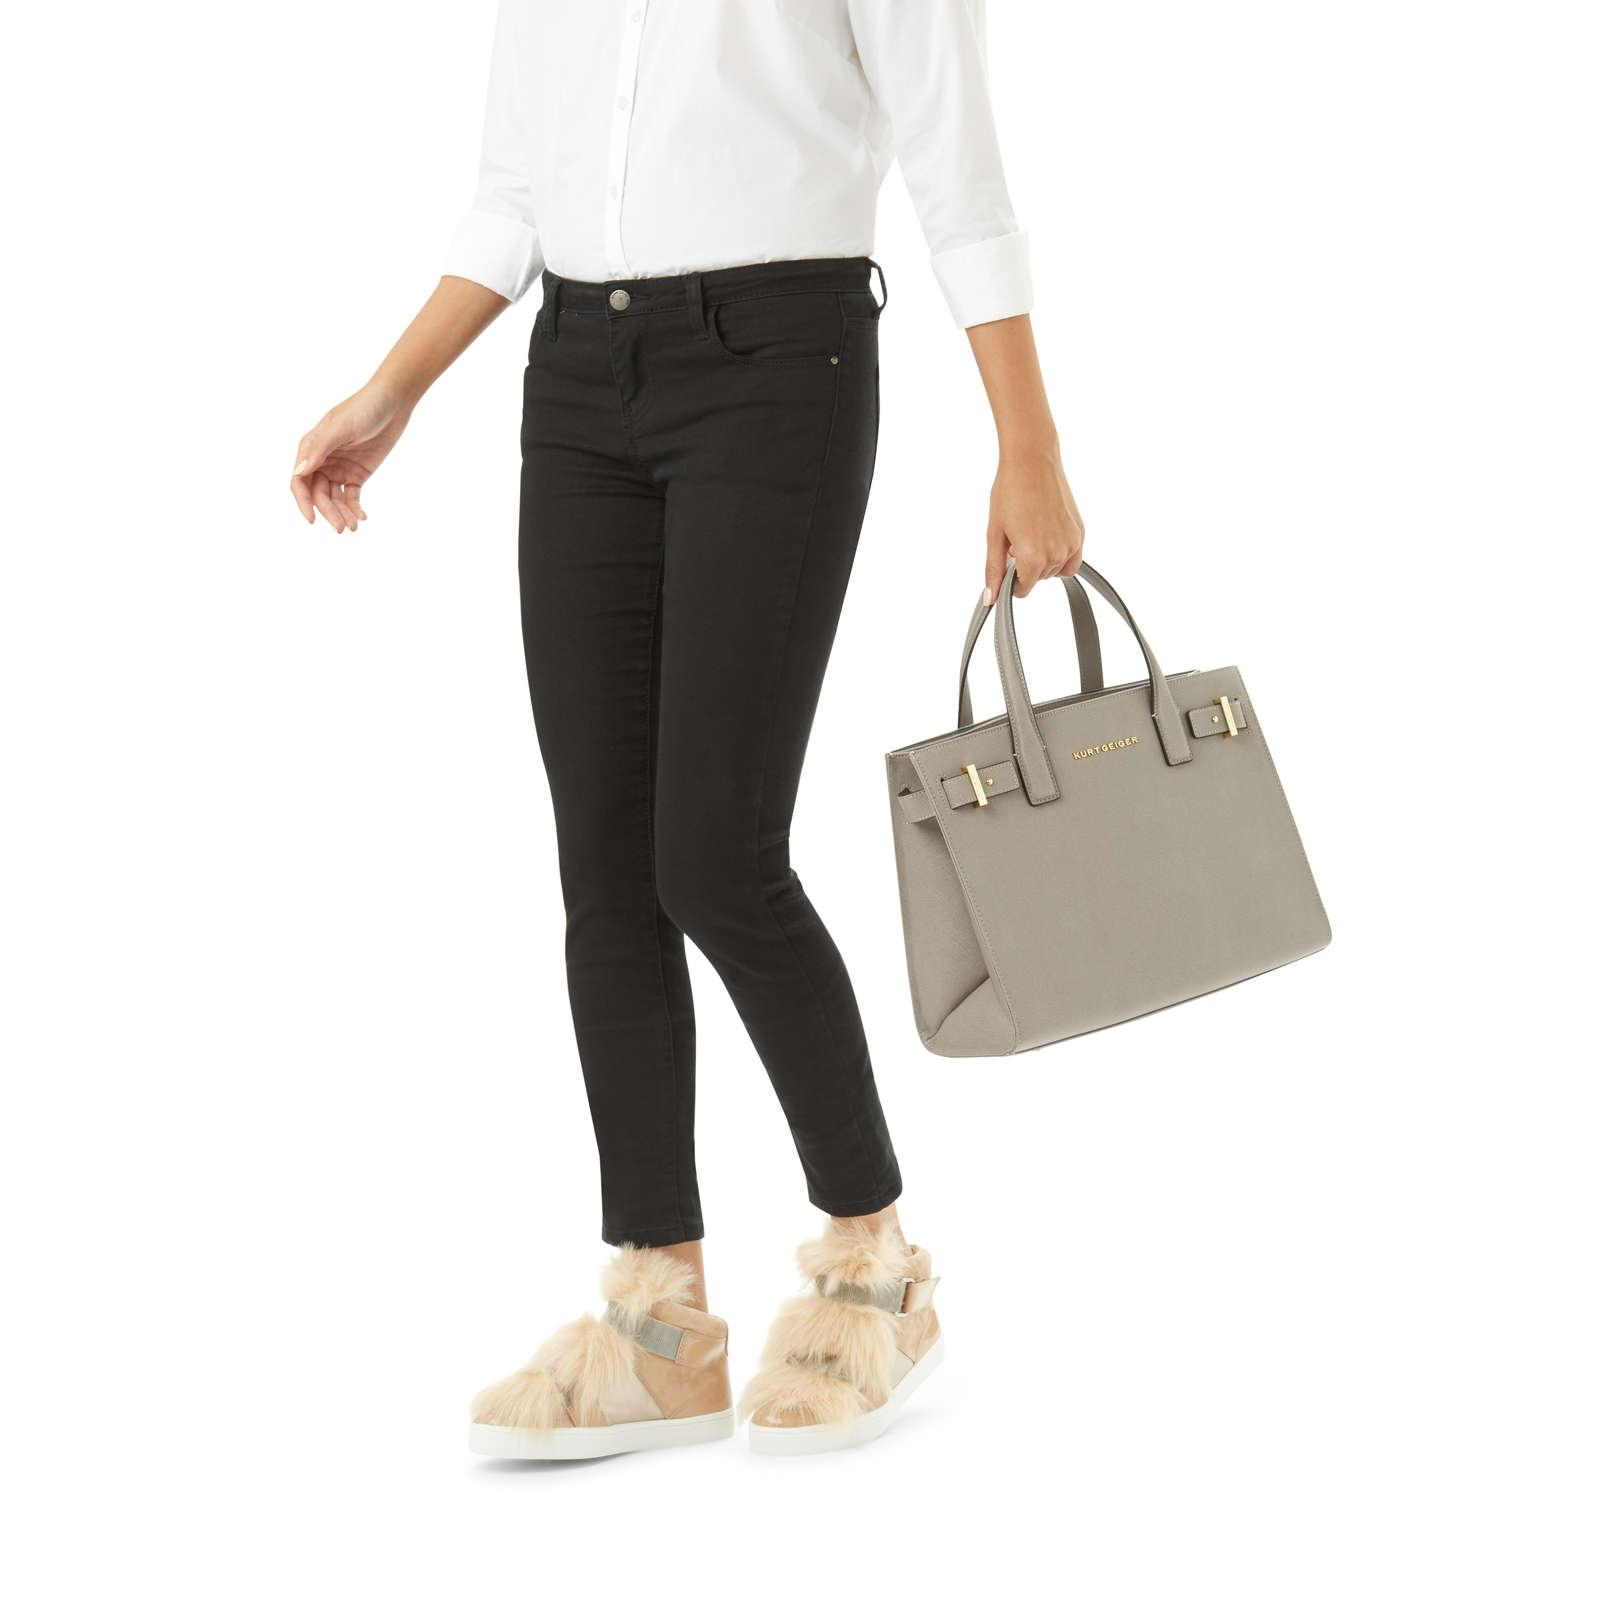 Kurt Geiger Leather Saffiano London Tote in Taupe (Brown)